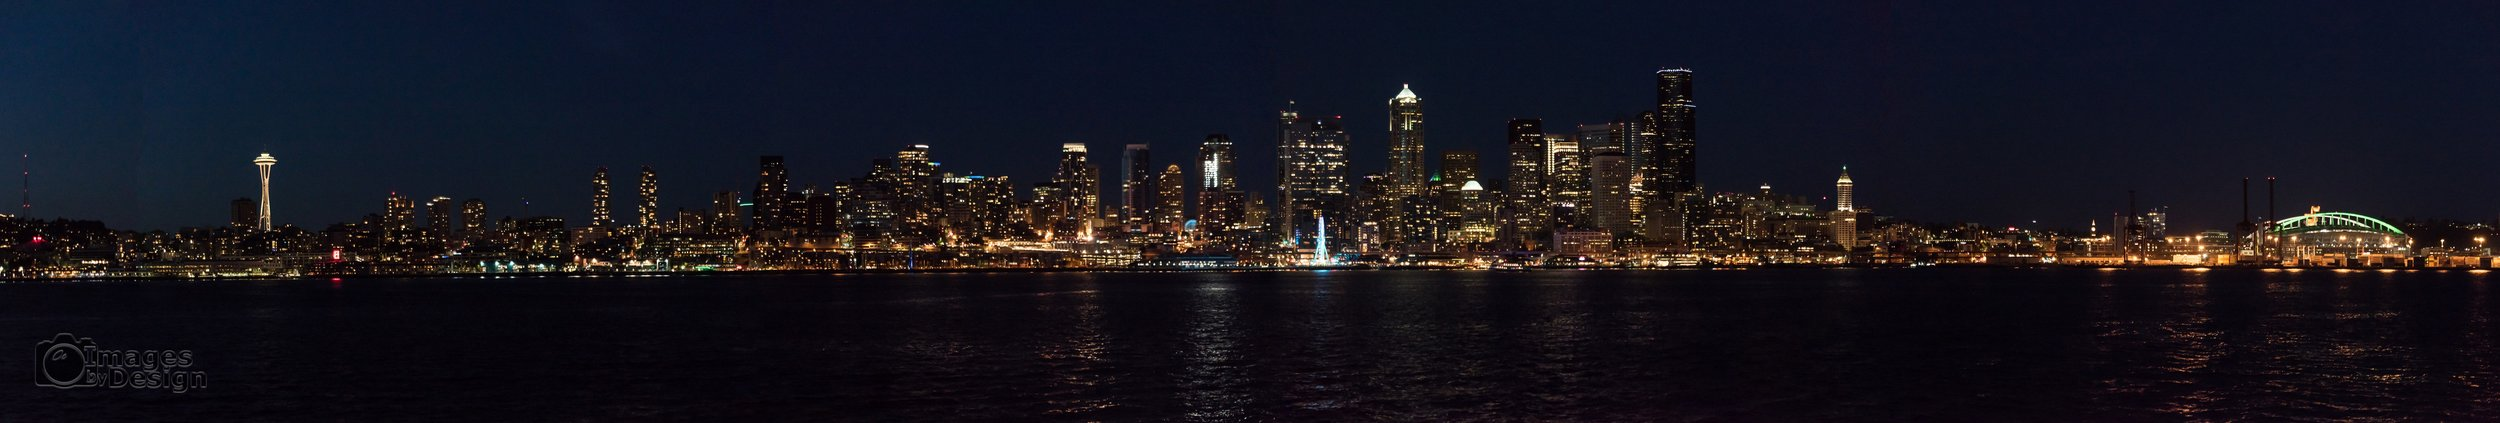 Night time Seattle cityscape as seen from Puget Sound.  ©2017 Images by Design